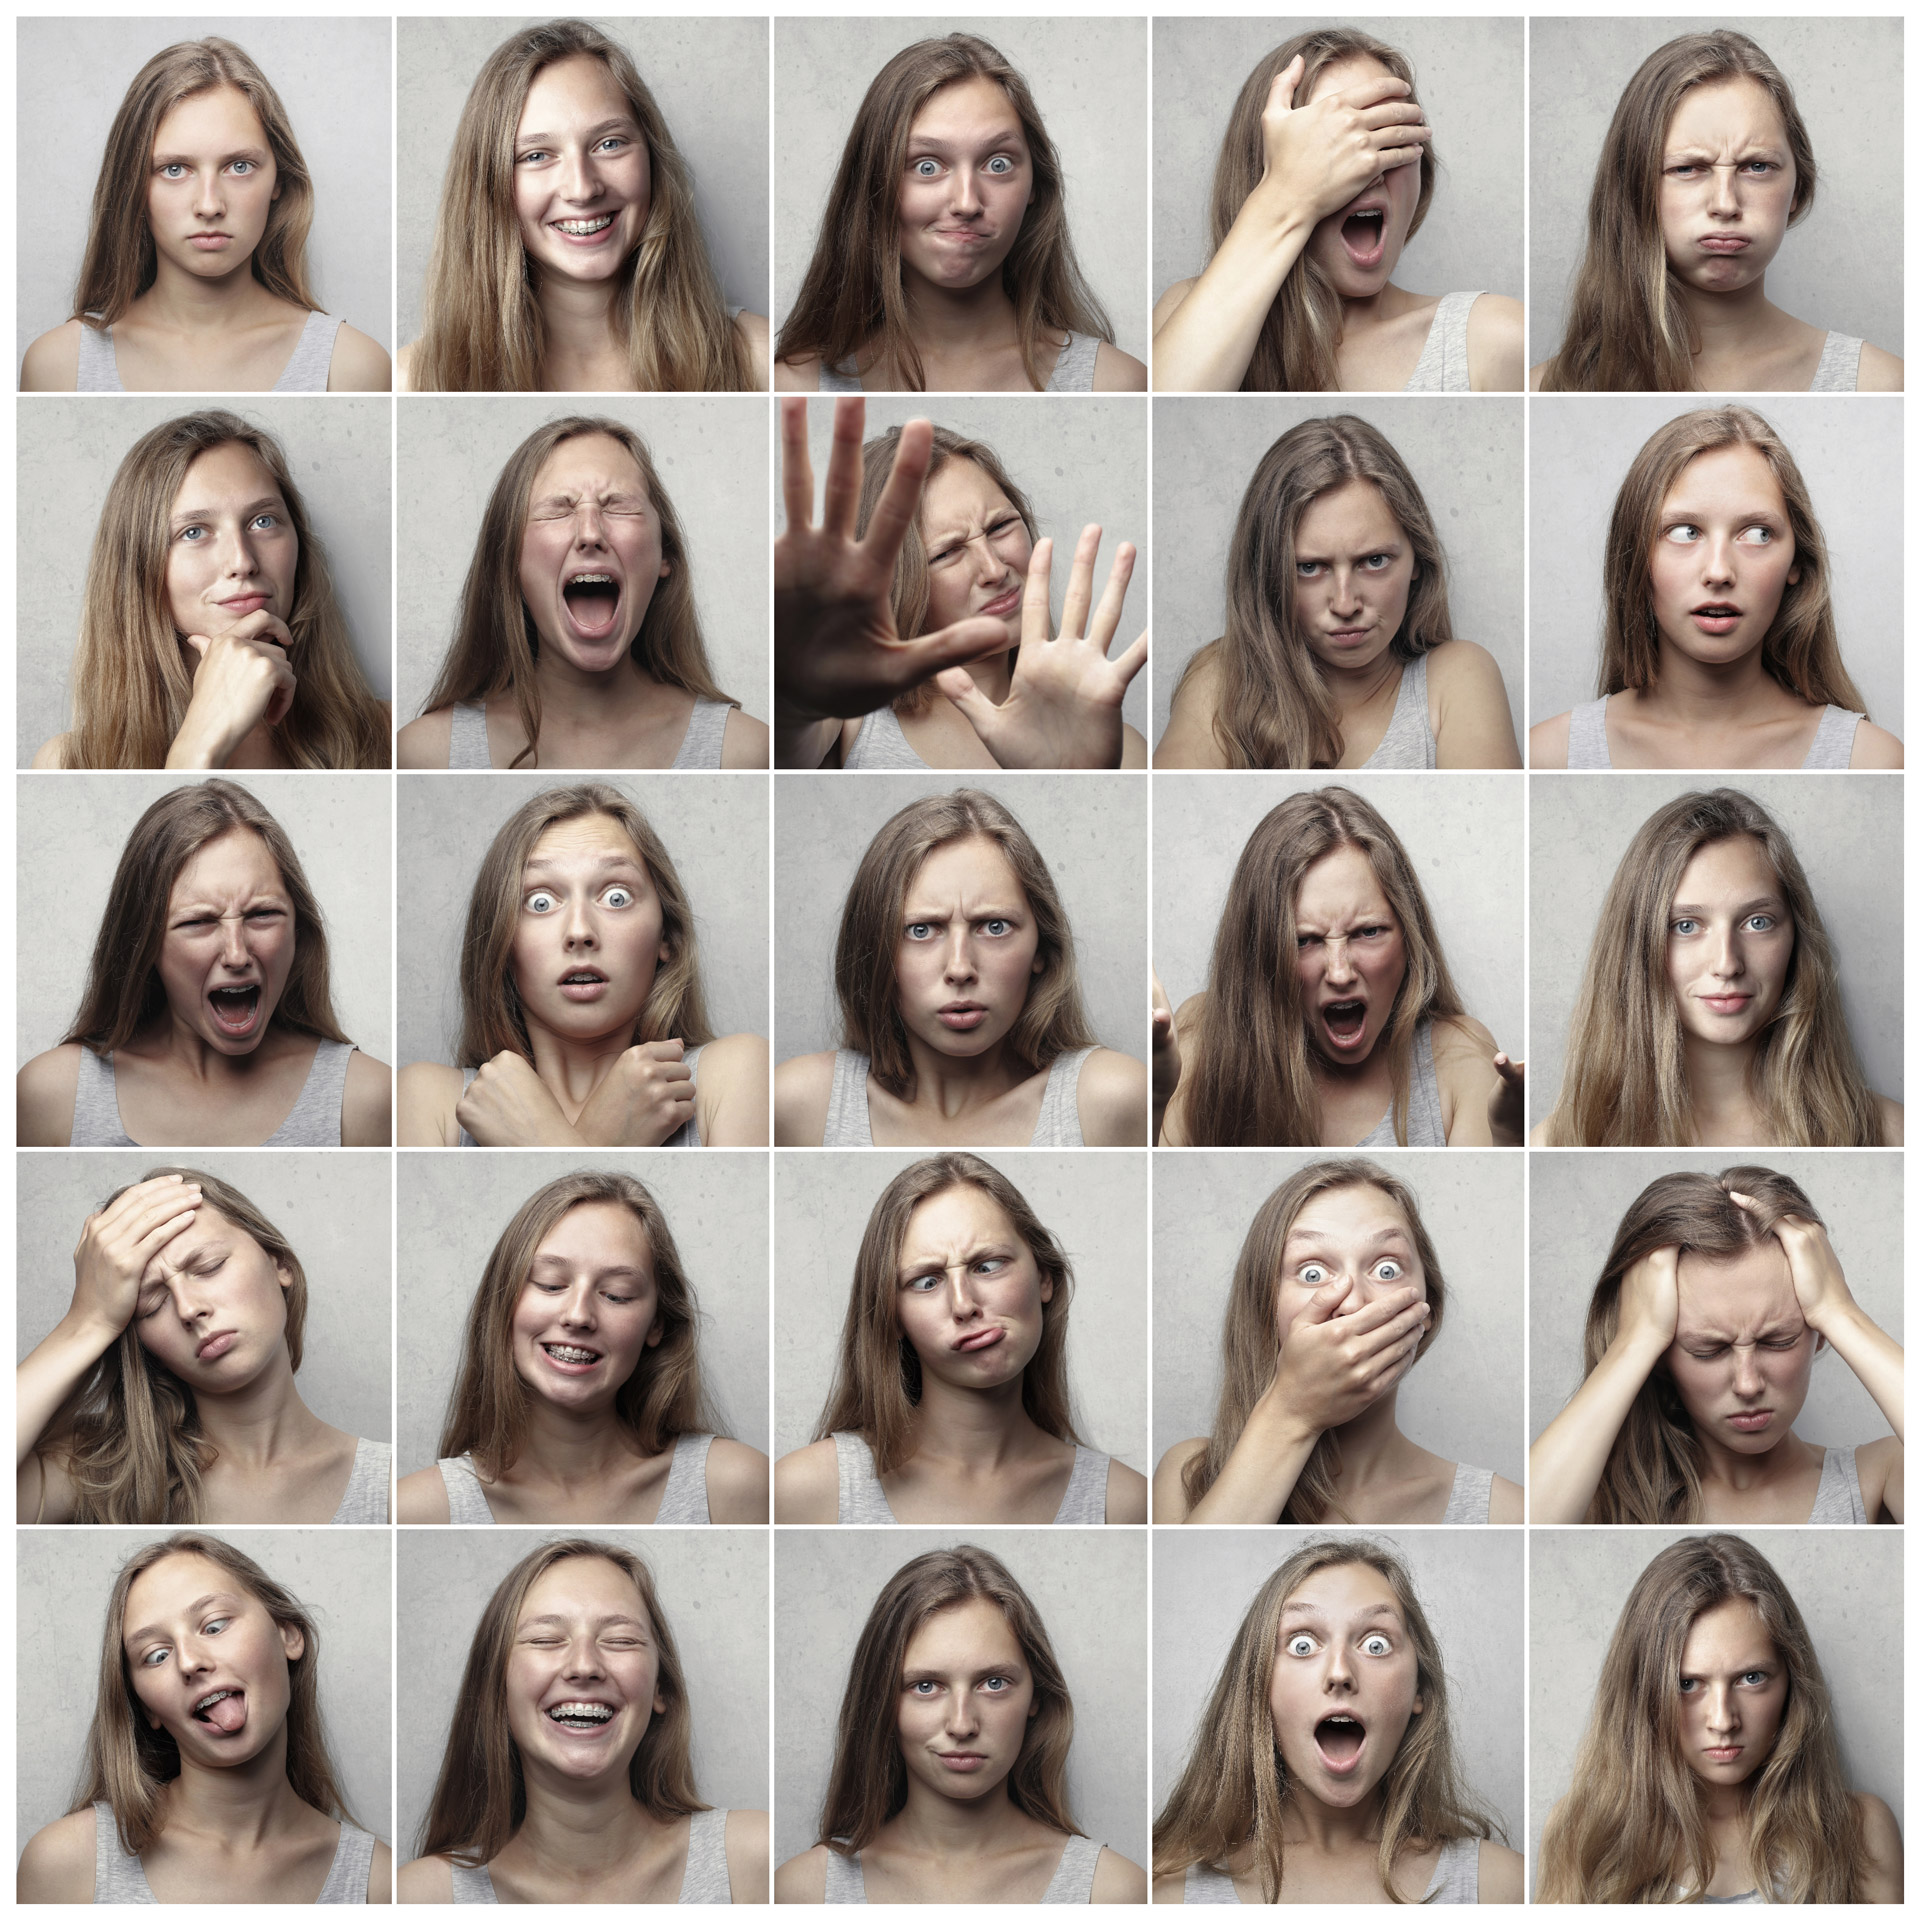 collage-photo-of-woman